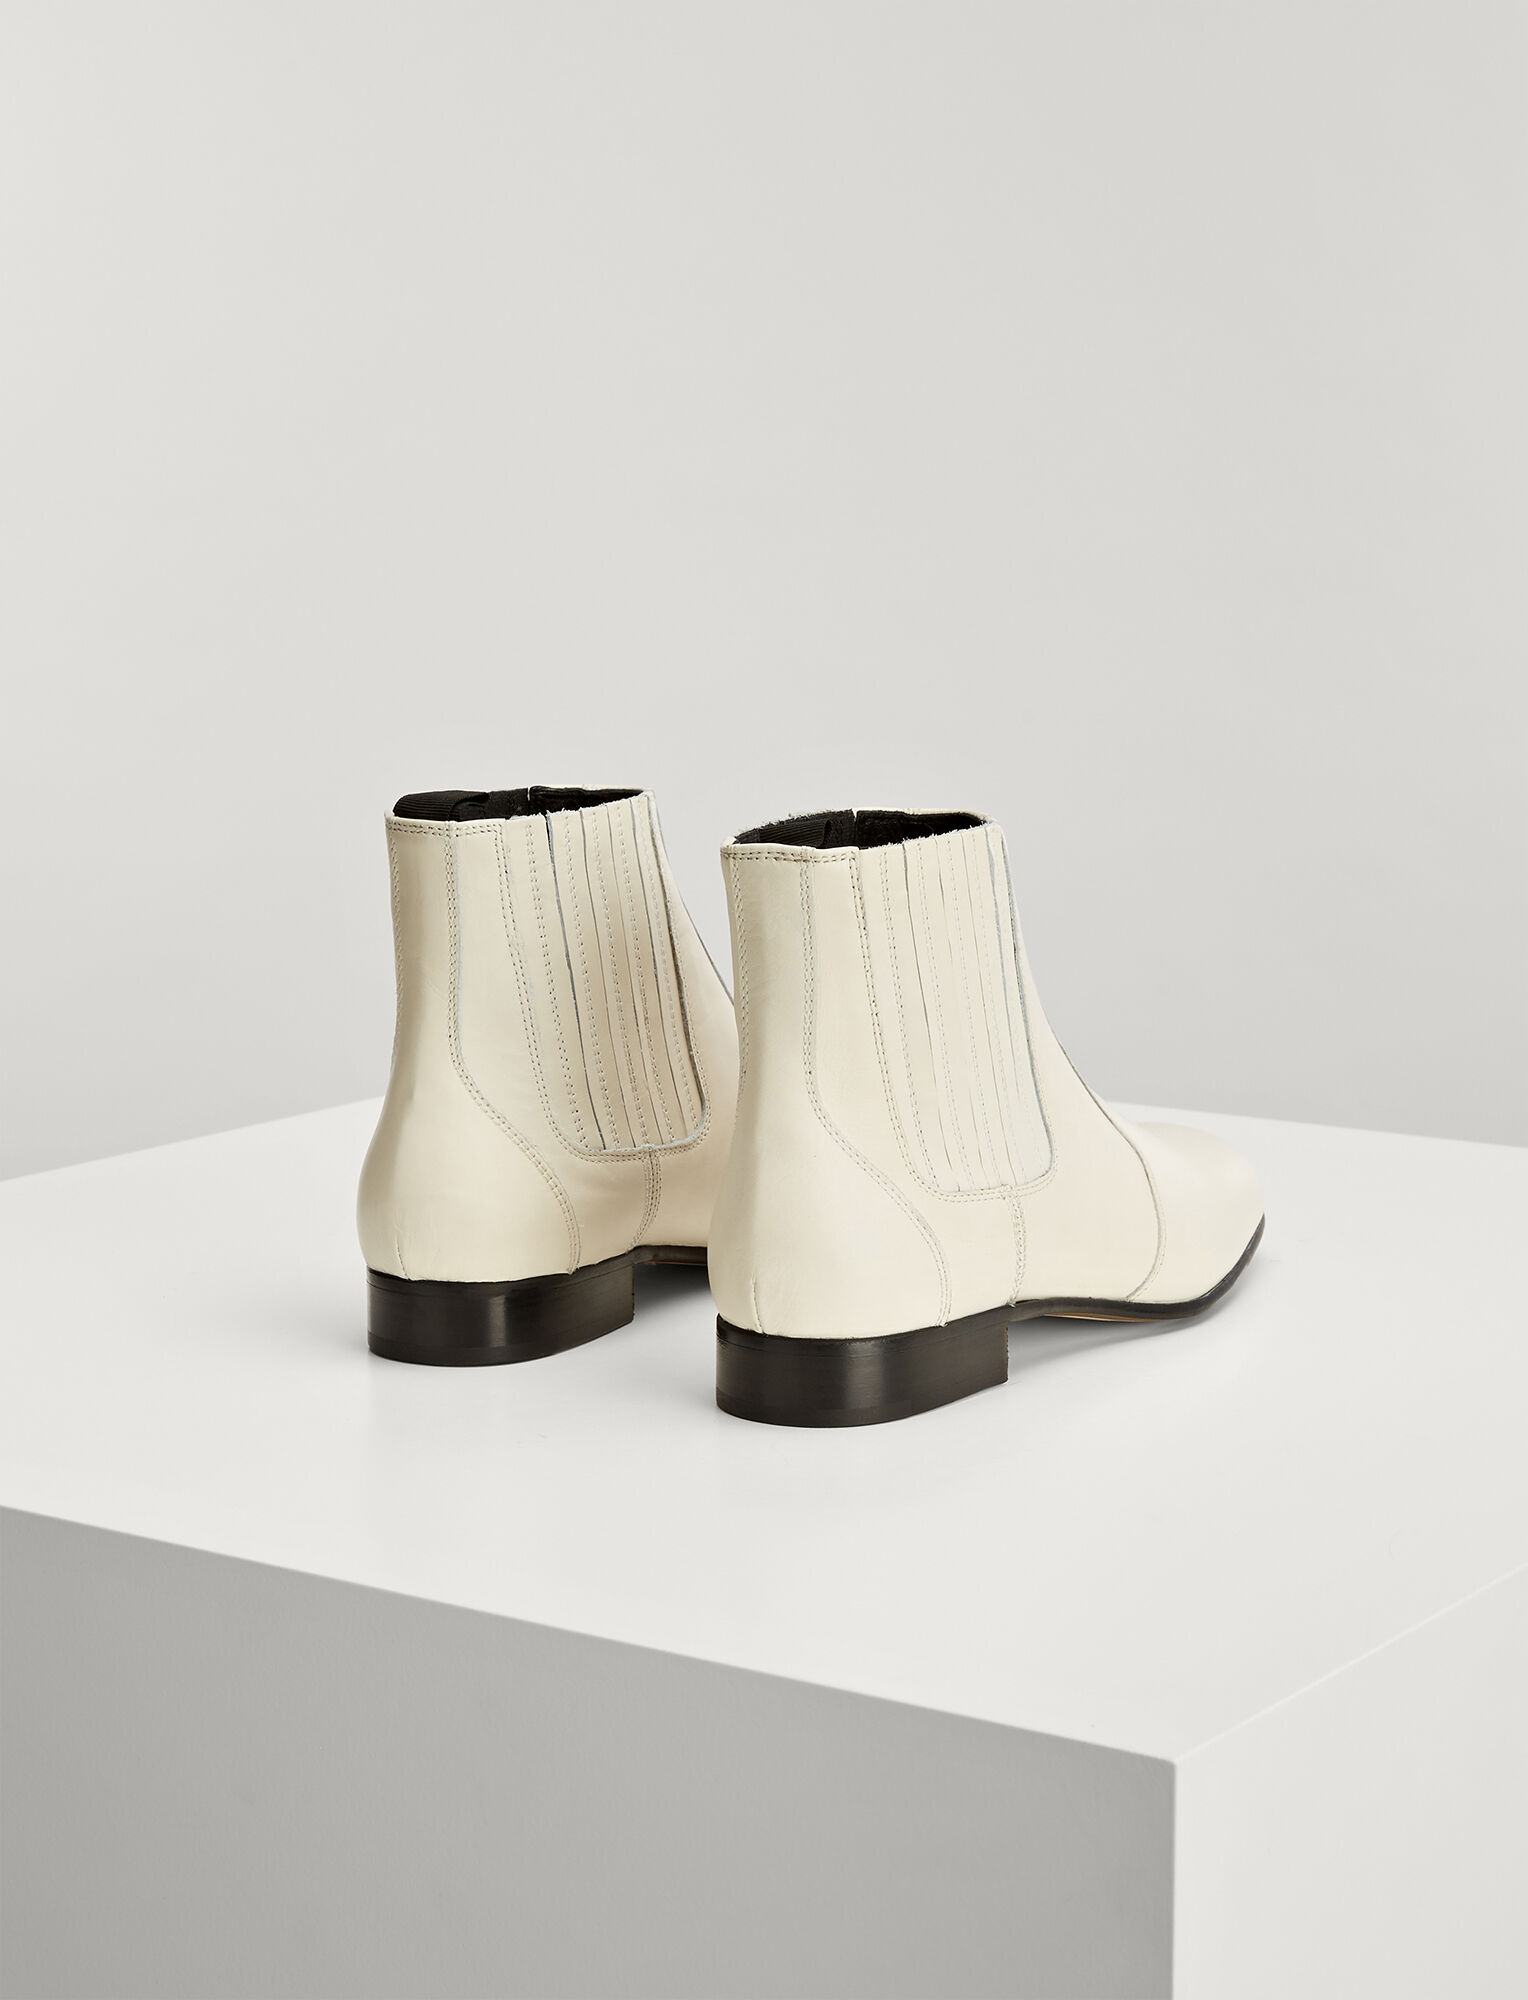 Joseph, Calf Leather Pixie Boot, in WHITE